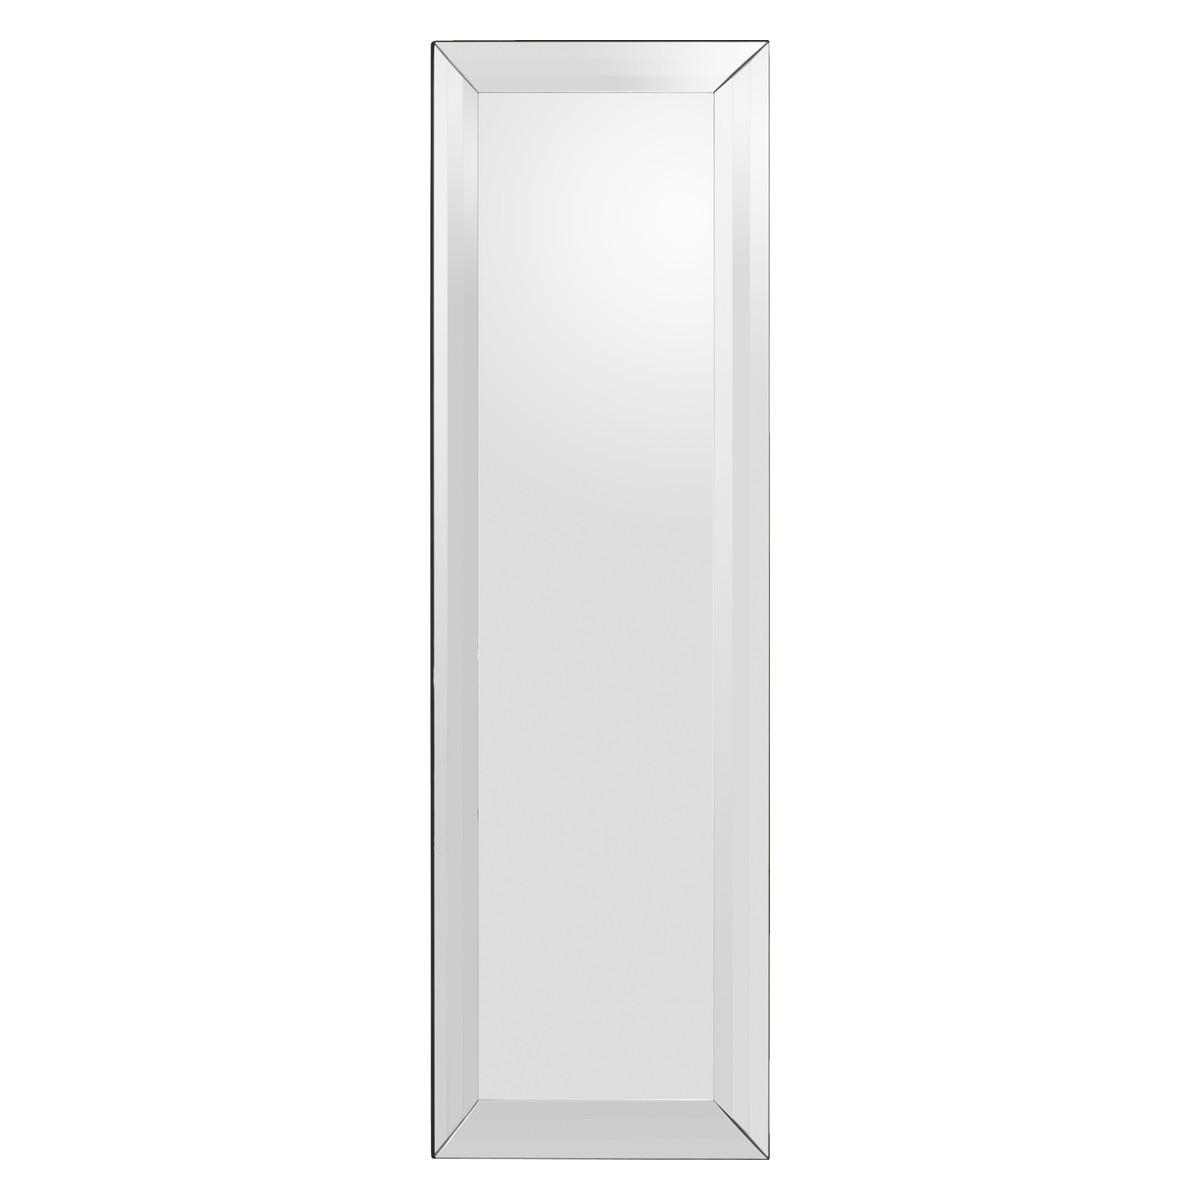 Wall Mirror Full Length 129 Cute Interior And Full Wall Mirrors In Wall Mirror Full Length Frameless (Image 18 of 20)